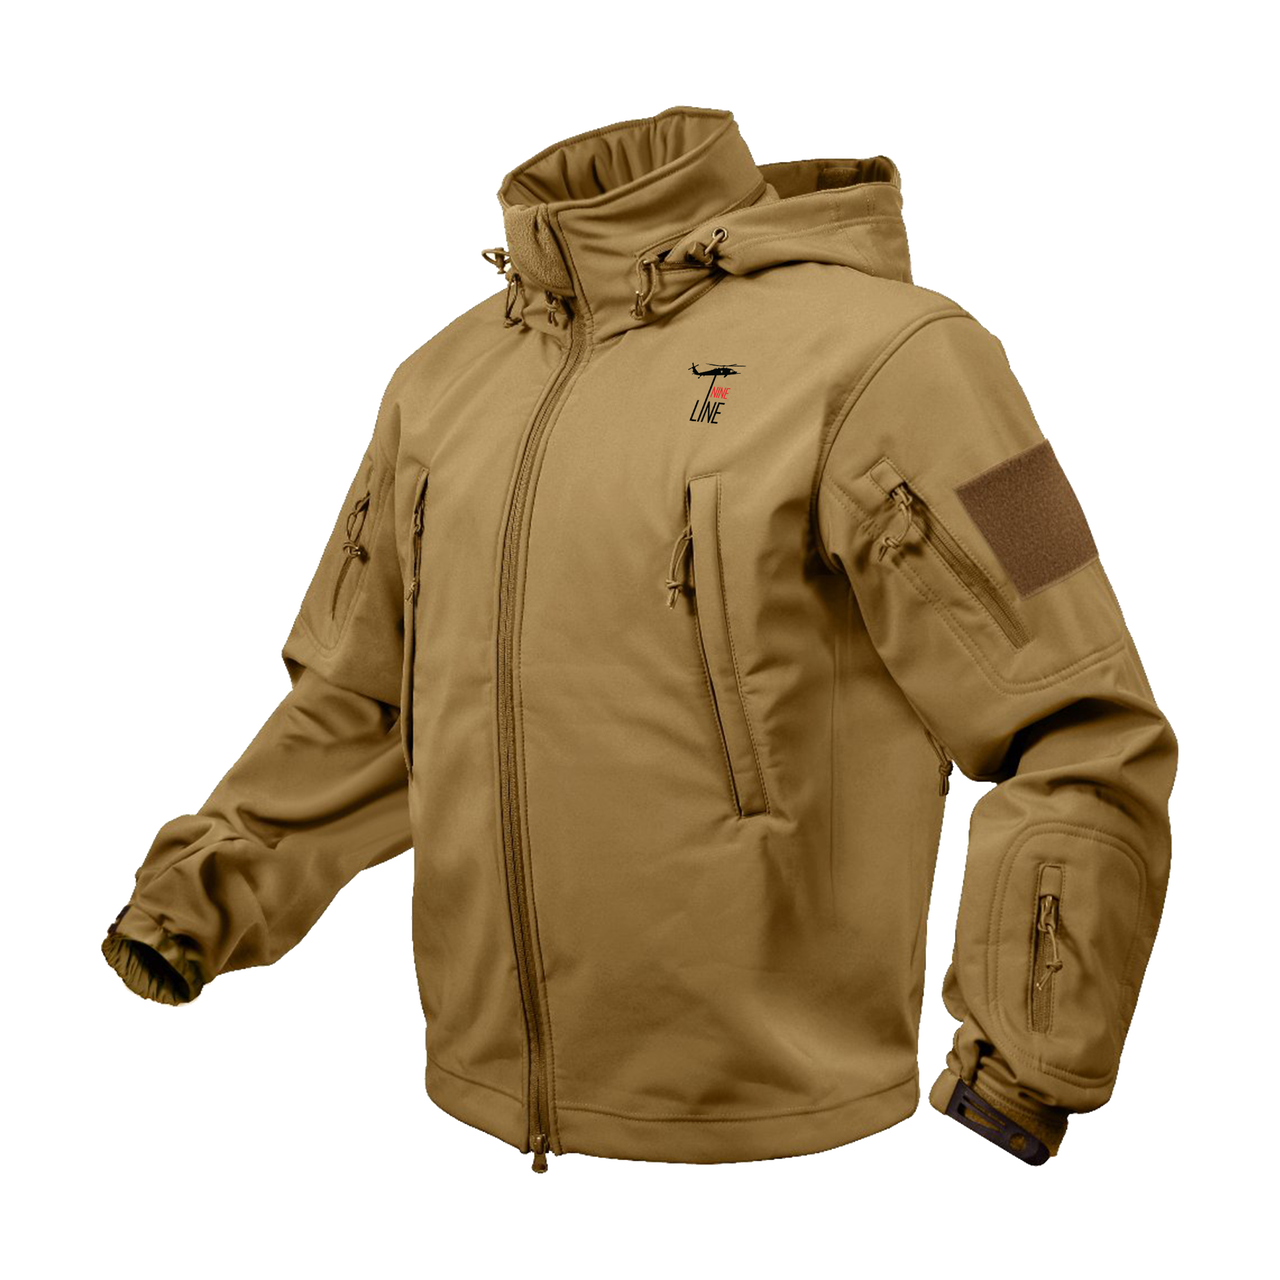 Tactical Softshell Jacket On Sale Tactical Jacket All Weather Jackets Tactical Clothing [ 1280 x 1280 Pixel ]